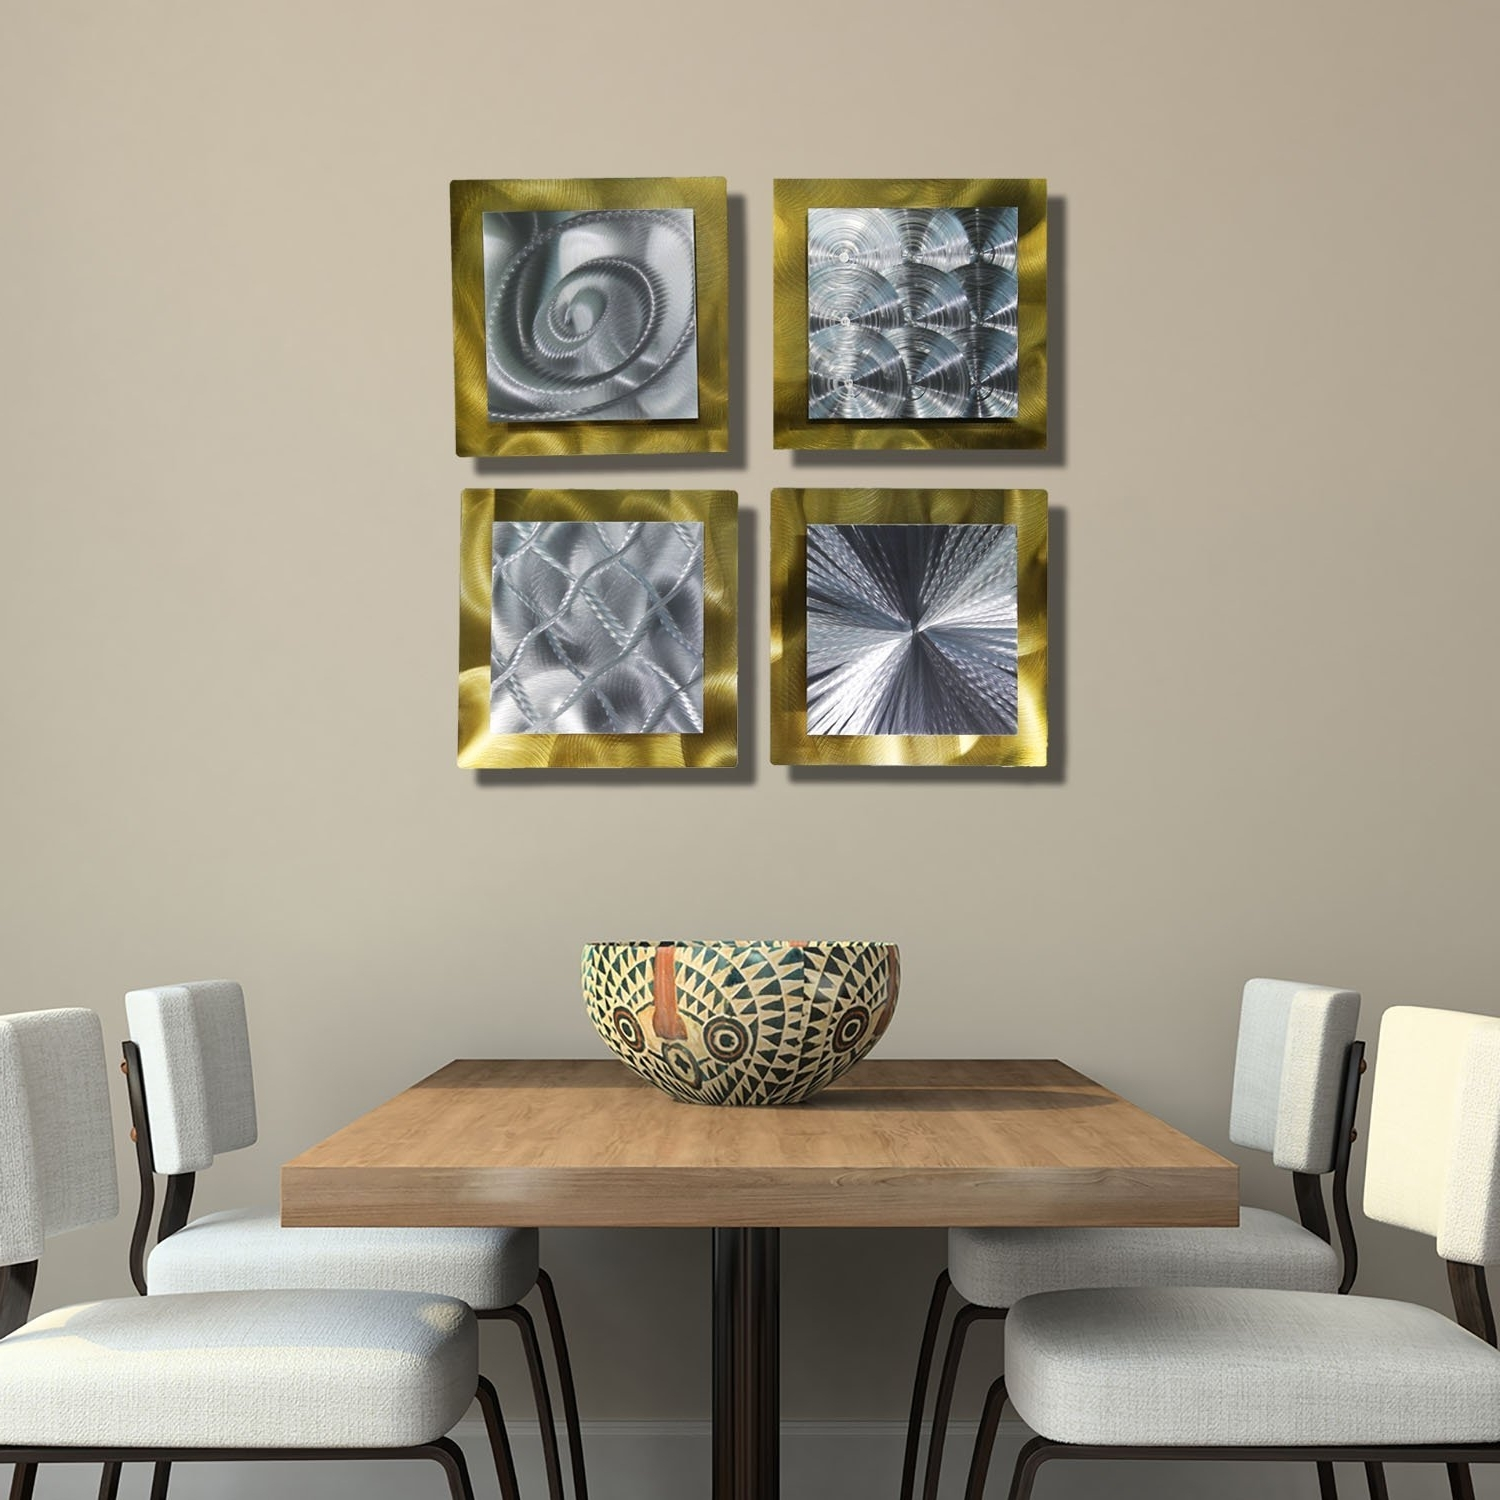 2017 Contemporary 3D Wall Art Intended For Amazon: Gold & Silver Contemporary Metal Wall Art – Set Of  (View 1 of 15)